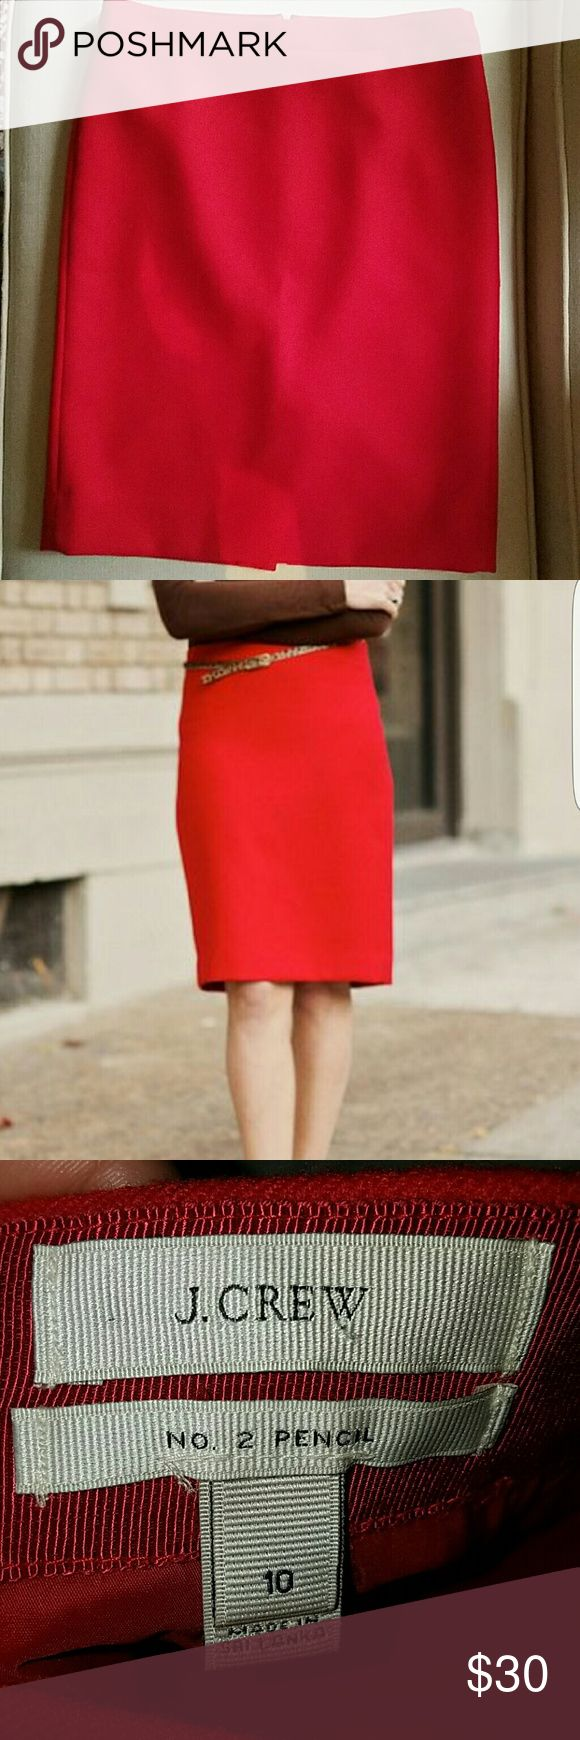 J. Crew number 2 red pencil skirt J. Crew Red Wool #2 pencil skirt Mint condition Size 10 J. Crew Skirts Pencil